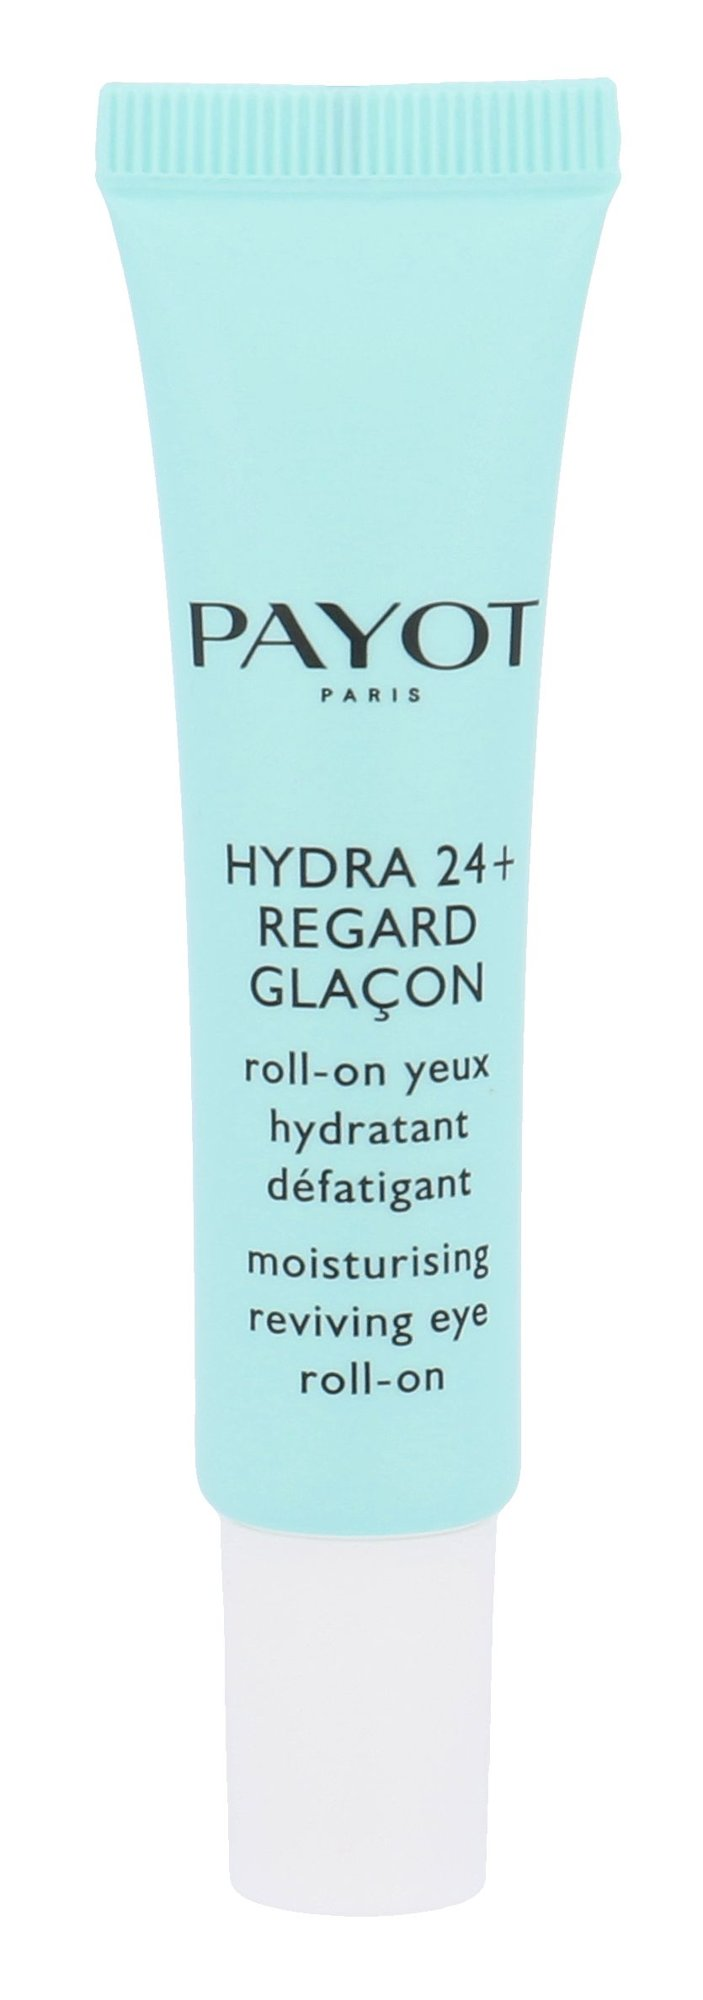 PAYOT Hydra 24+ Cosmetic 15ml  Moisturising Reviving Eyes Roll On